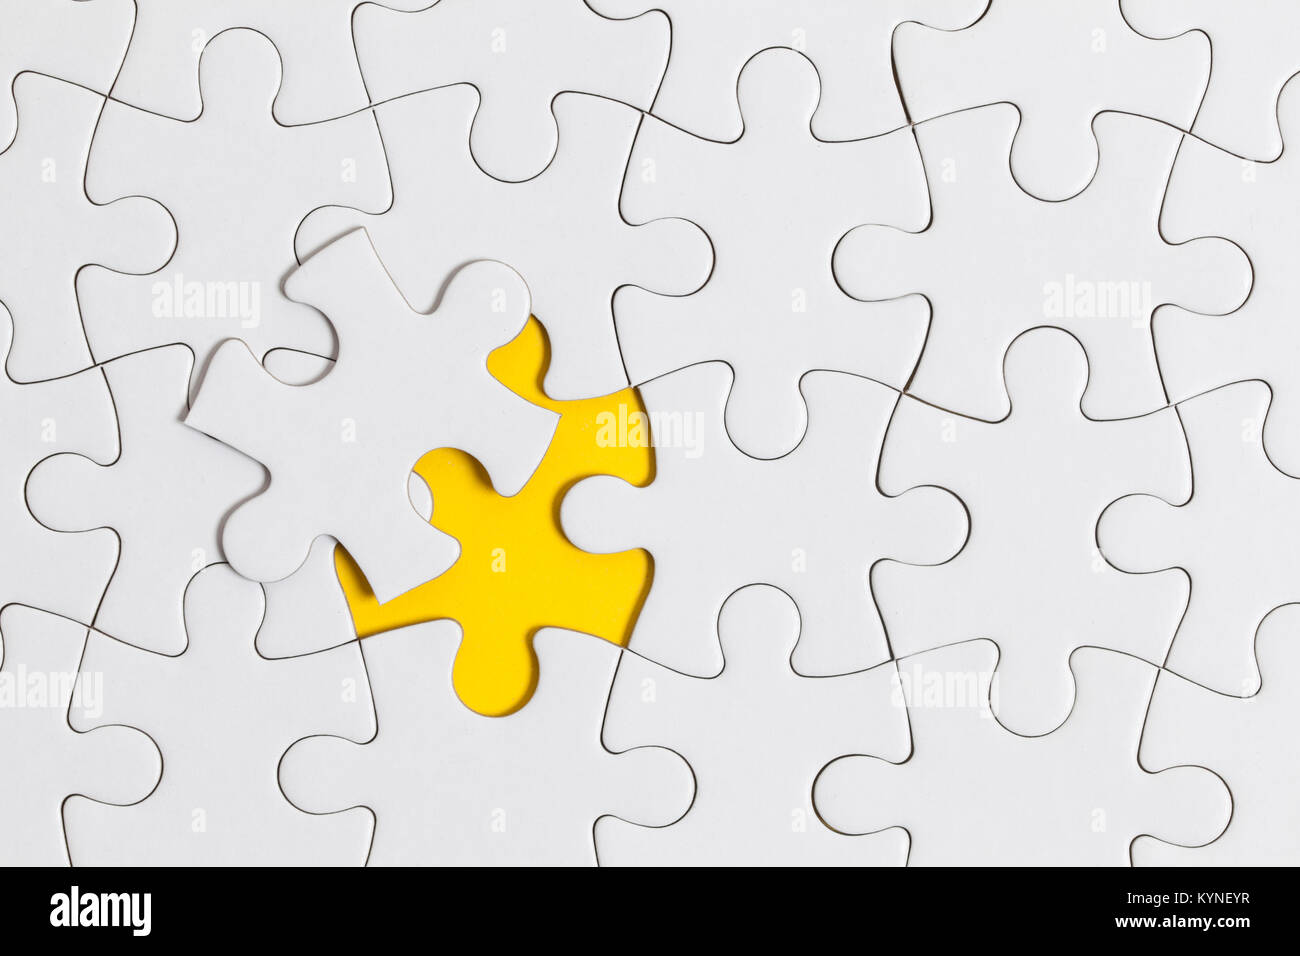 Pièces de puzzle puzzle blanc sur fond jaune. Solution Business concept Photo Stock